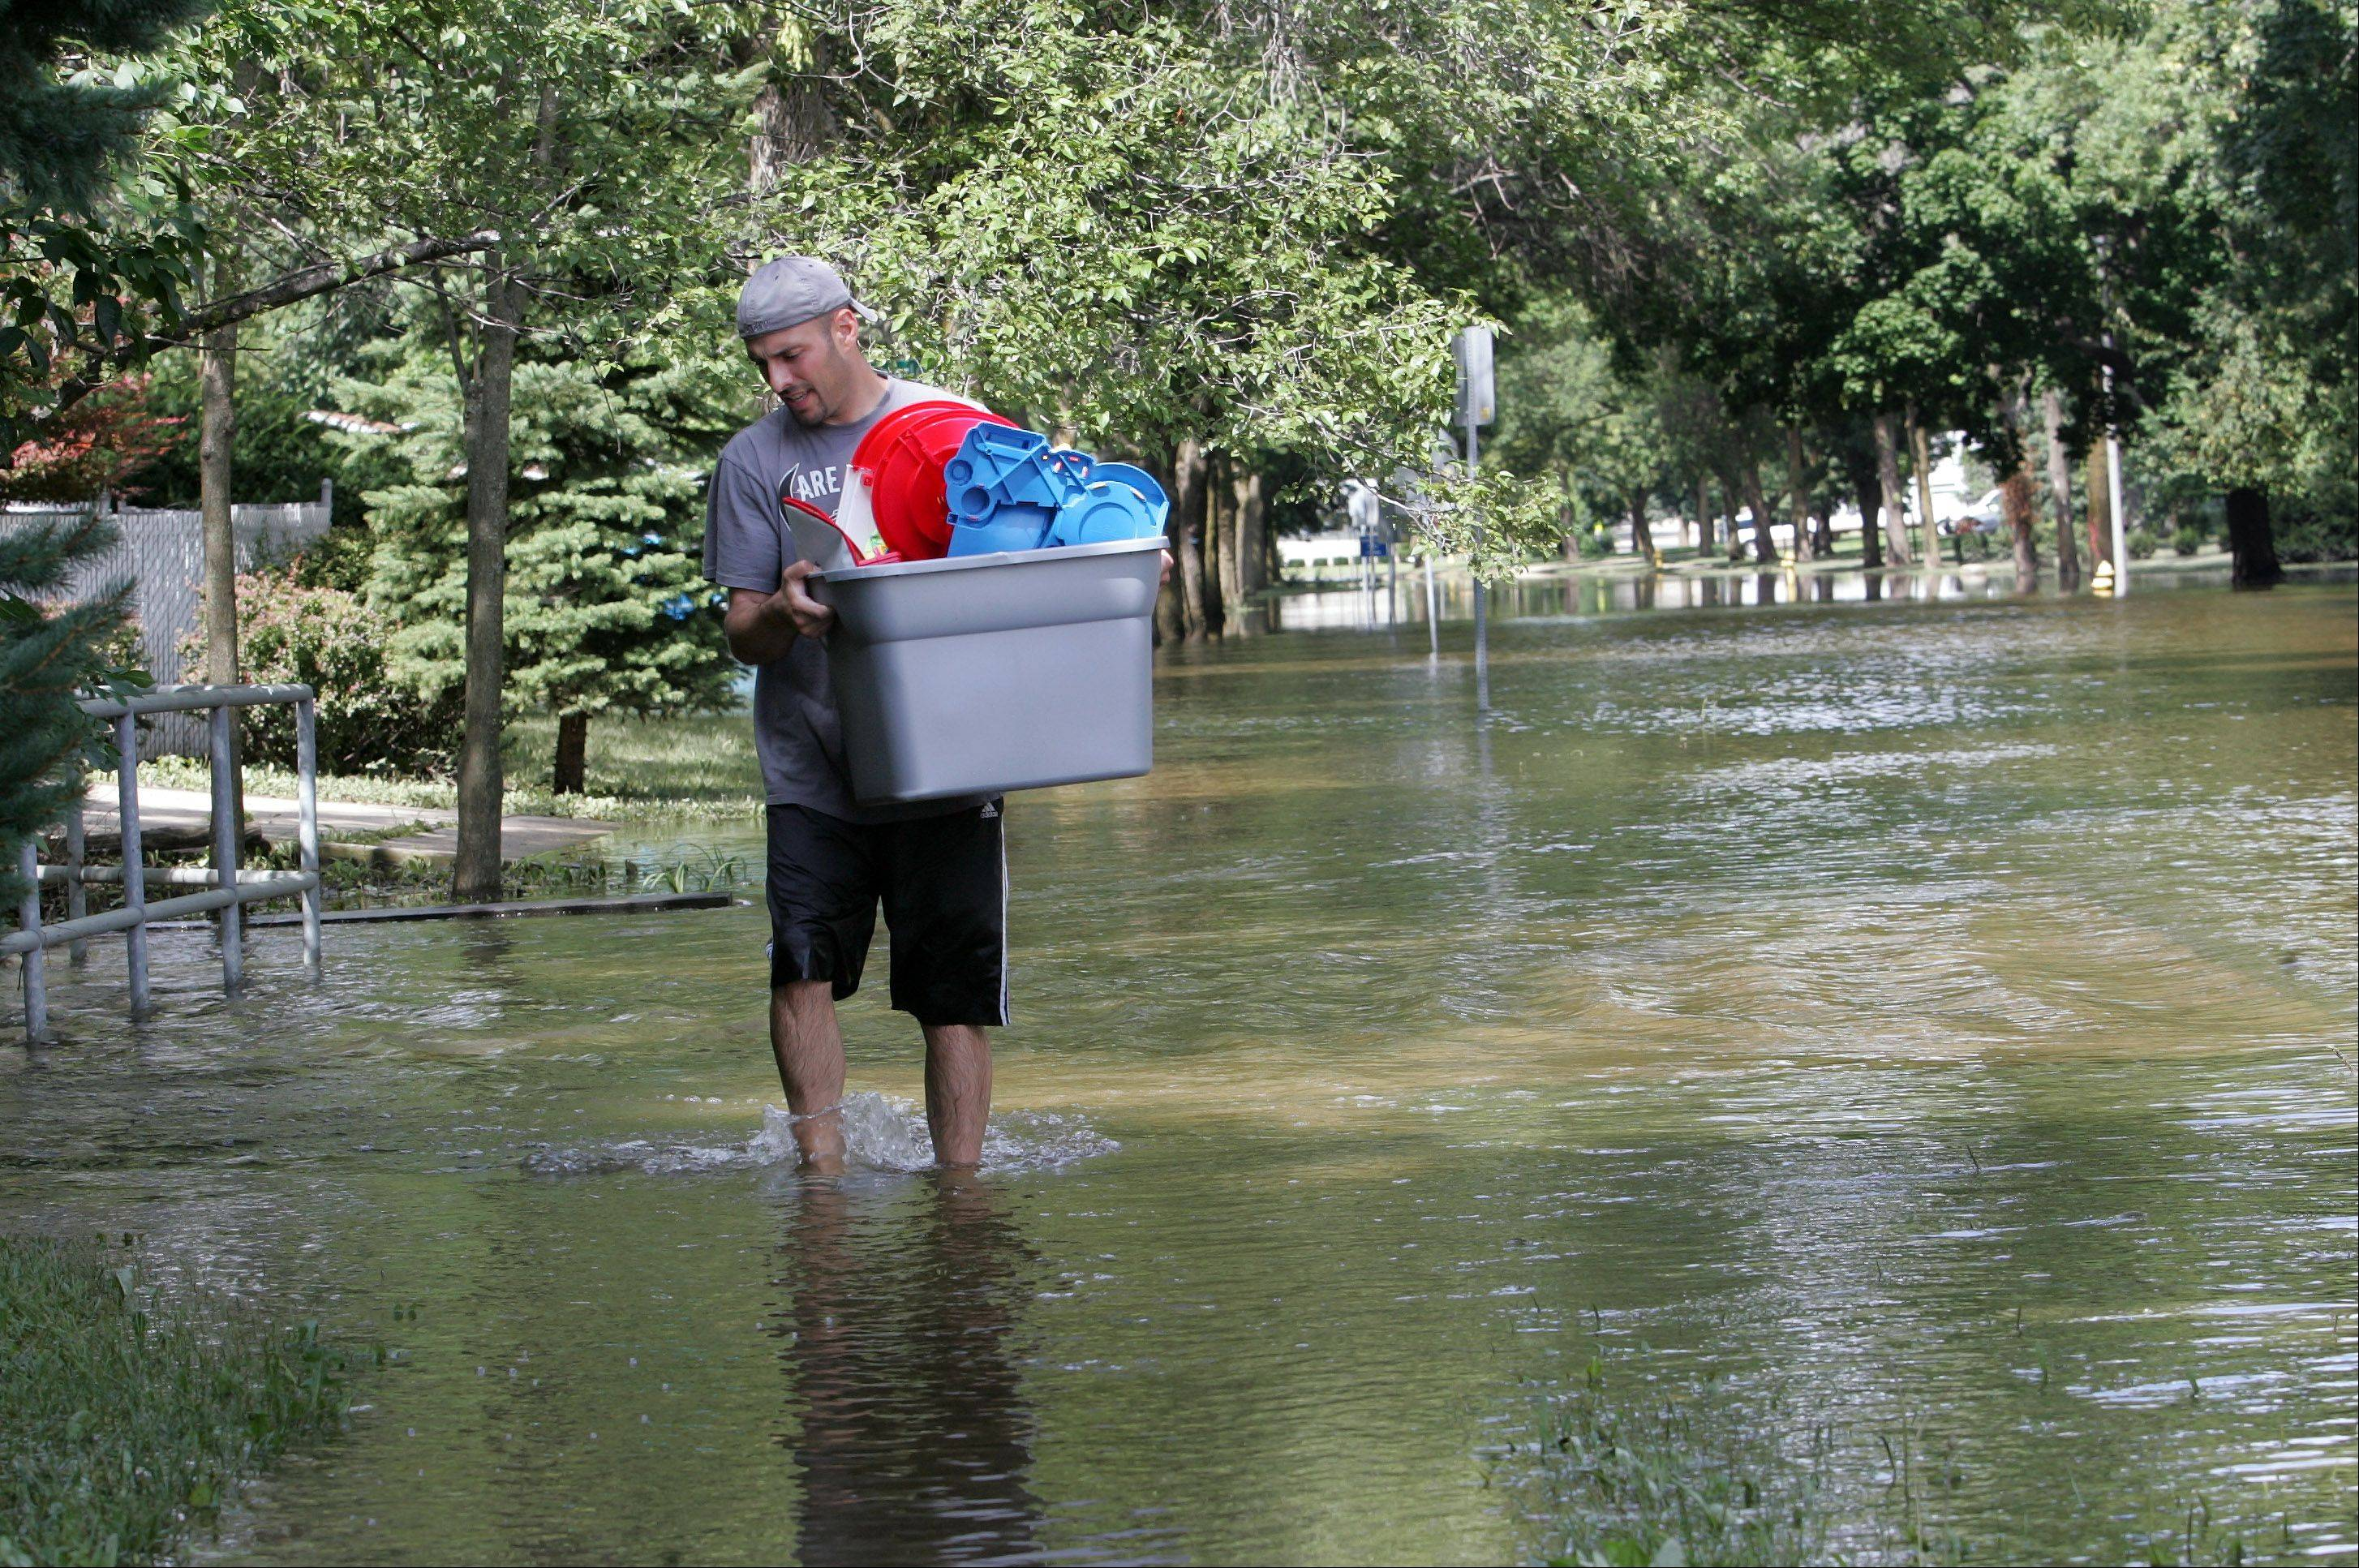 Many residents of Carol Stream's oldest part of town, including John Vent, had to move belongings from their flooded homes last summer. A year later, village officials say they've made improvements in how disaster response is handled.